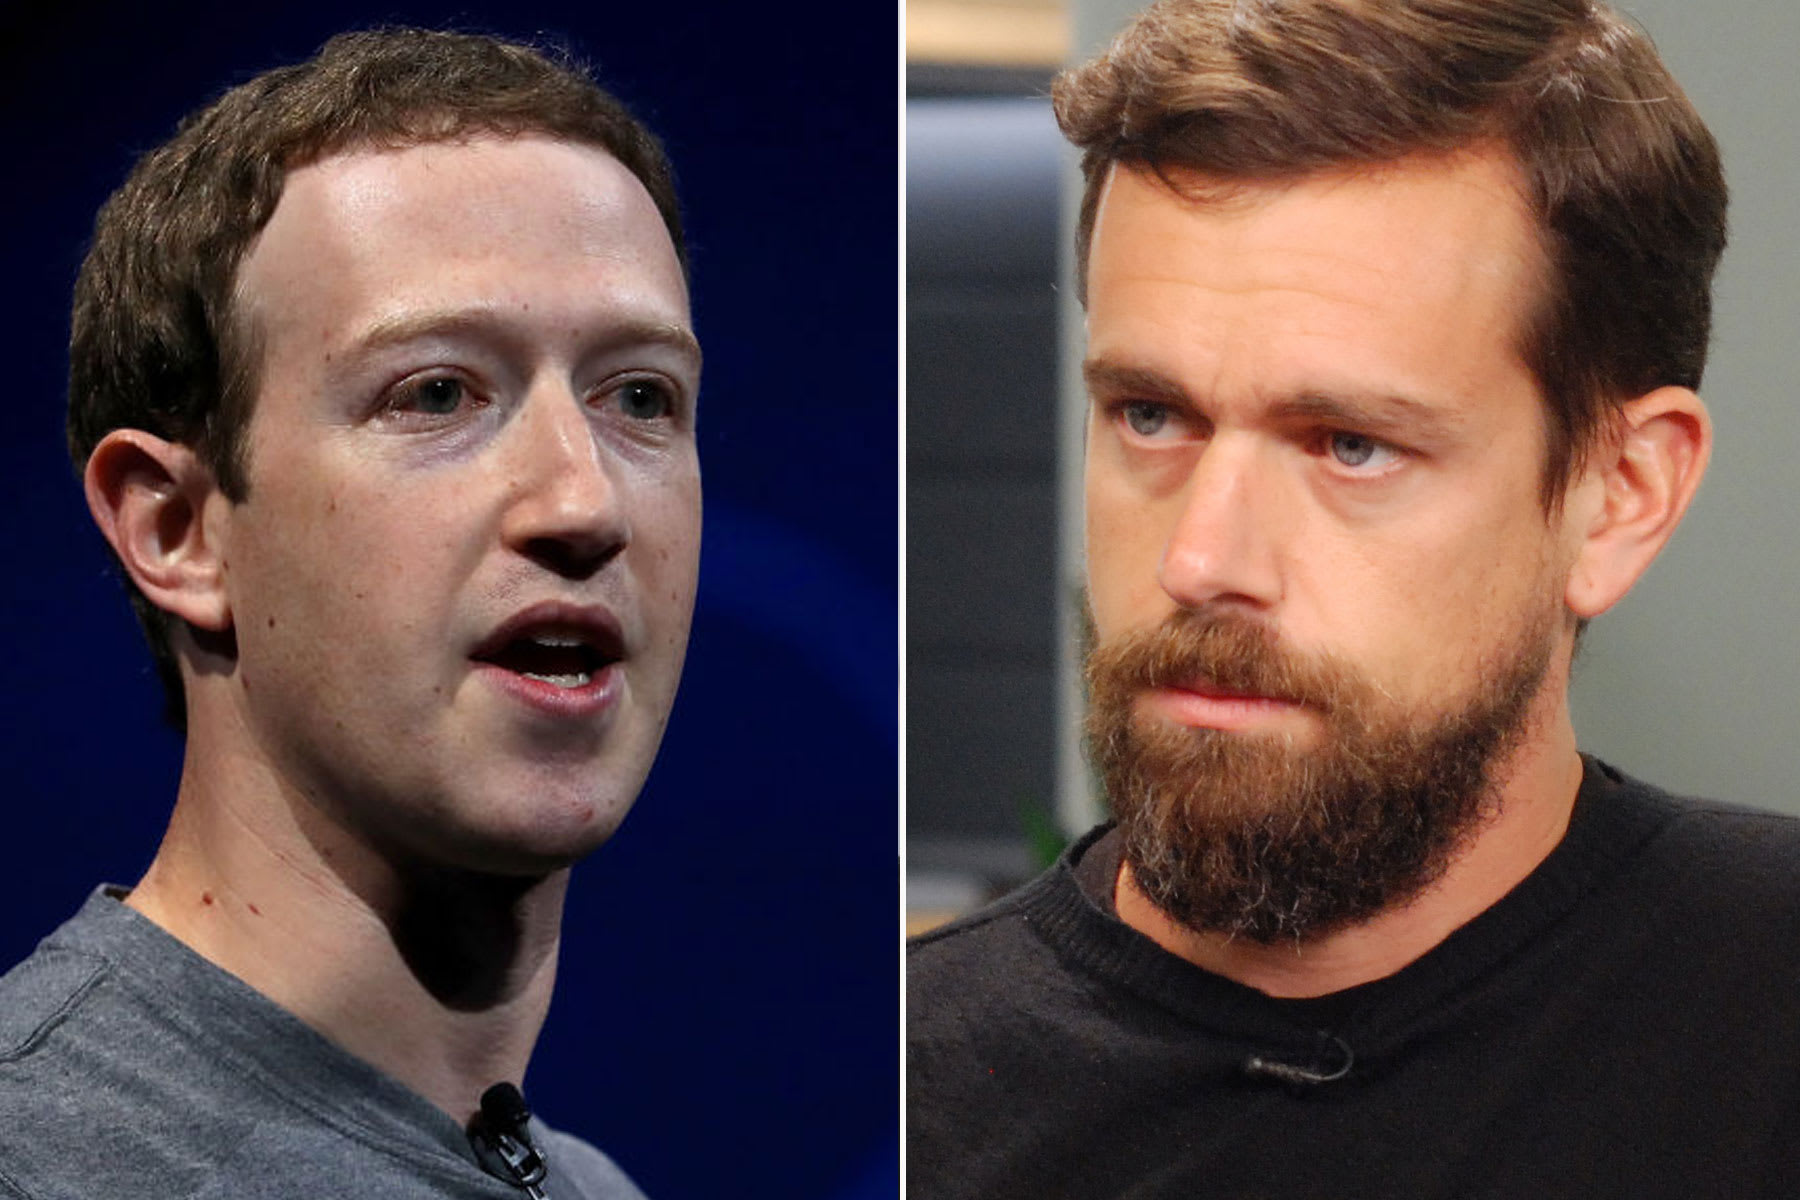 Twitter's Dorsey calls out Facebook CEO Zuckerberg on political ads